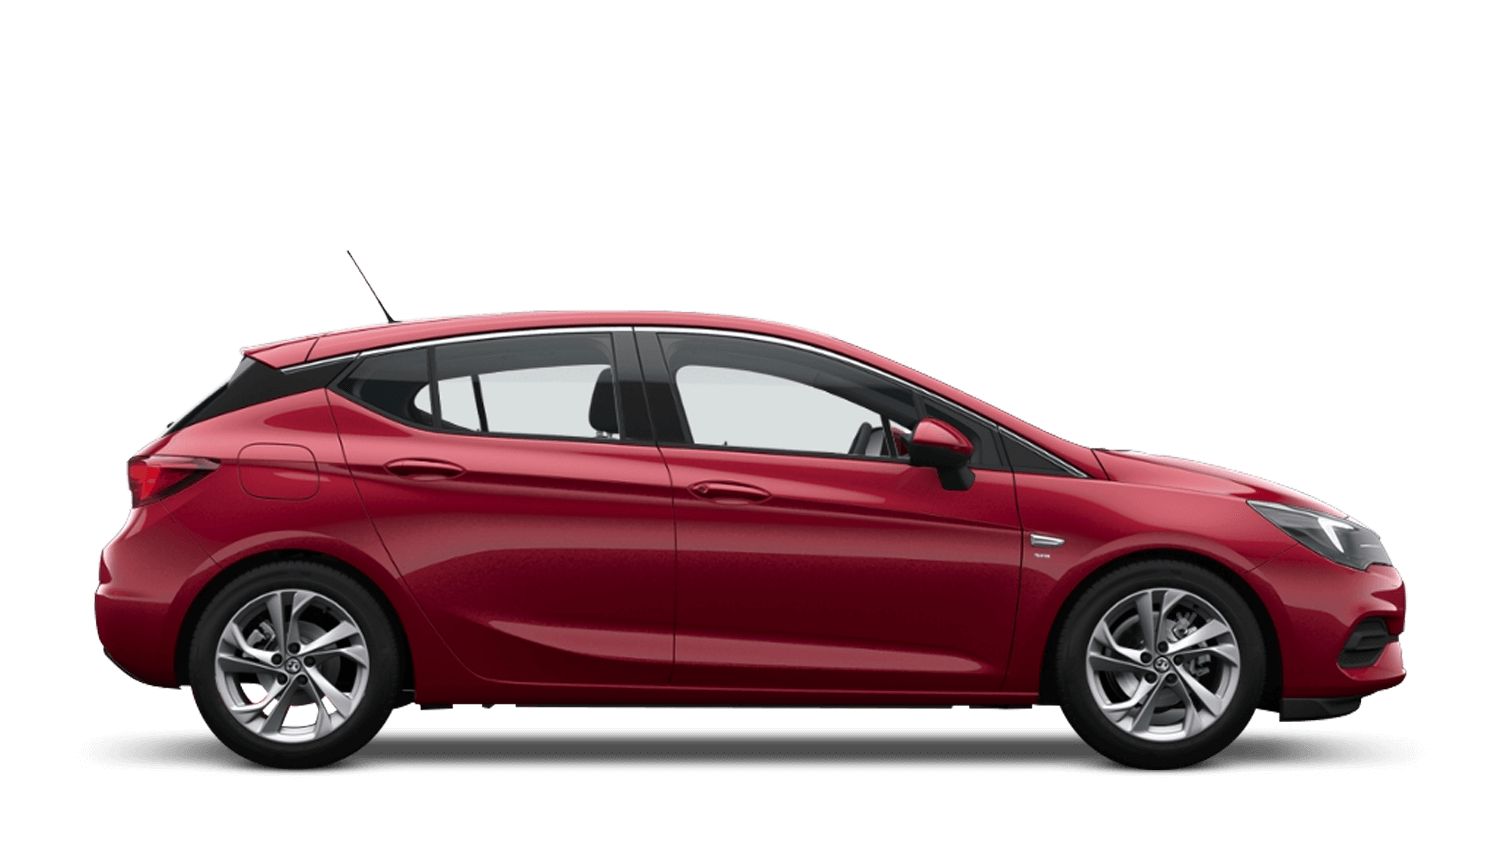 Hot Red (Premium) New Vauxhall Astra